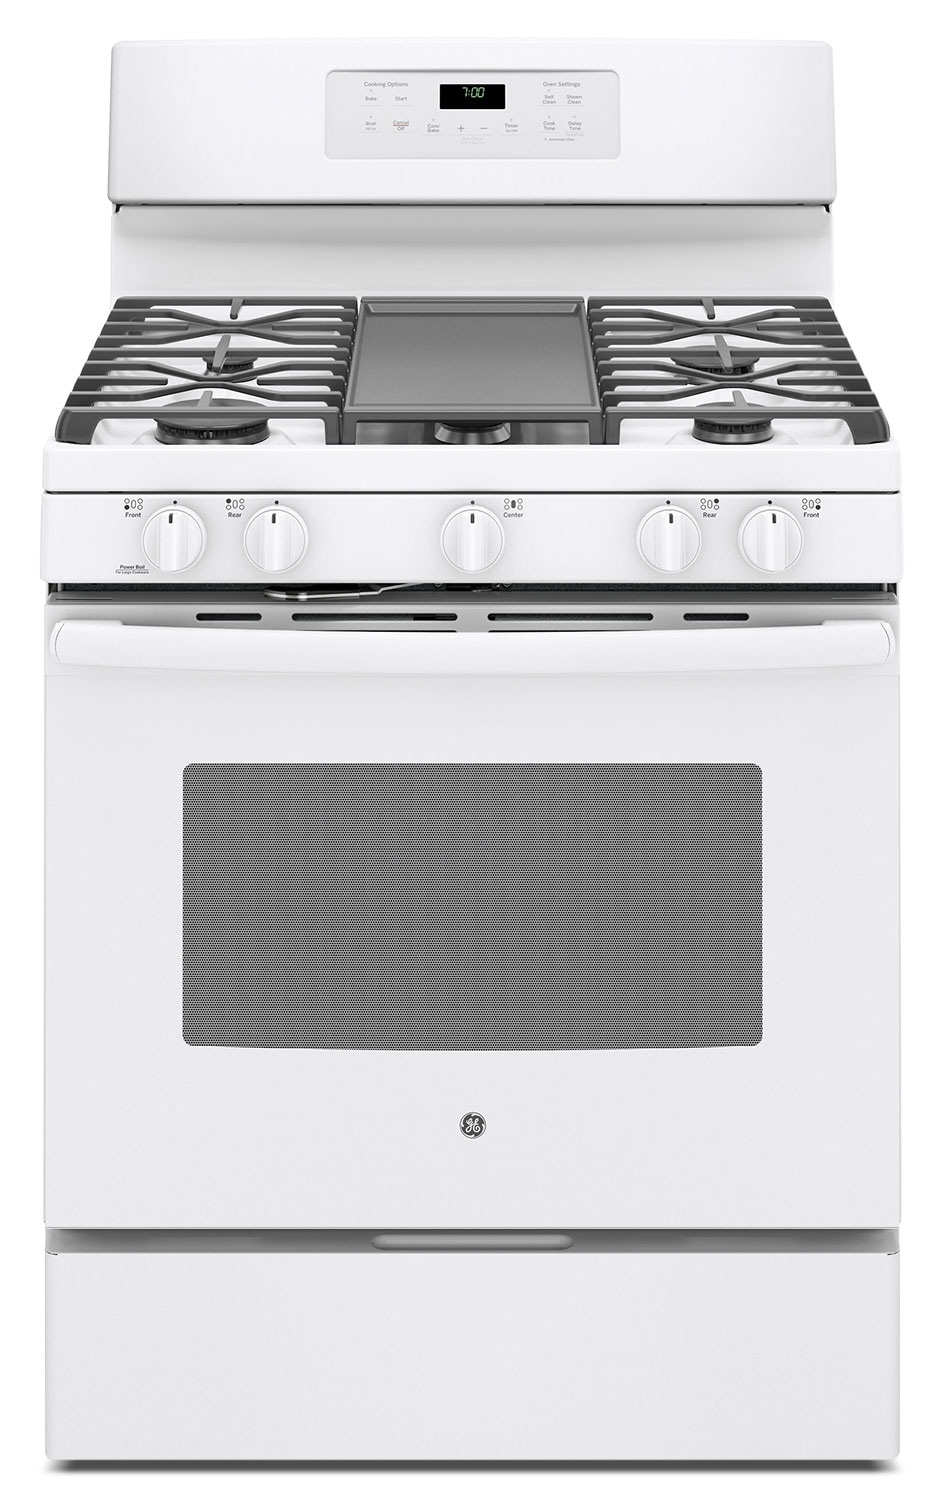 Cooking Products - GE 5.0 Cu. Ft. Freestanding Gas Range – JCGB700DEJWW